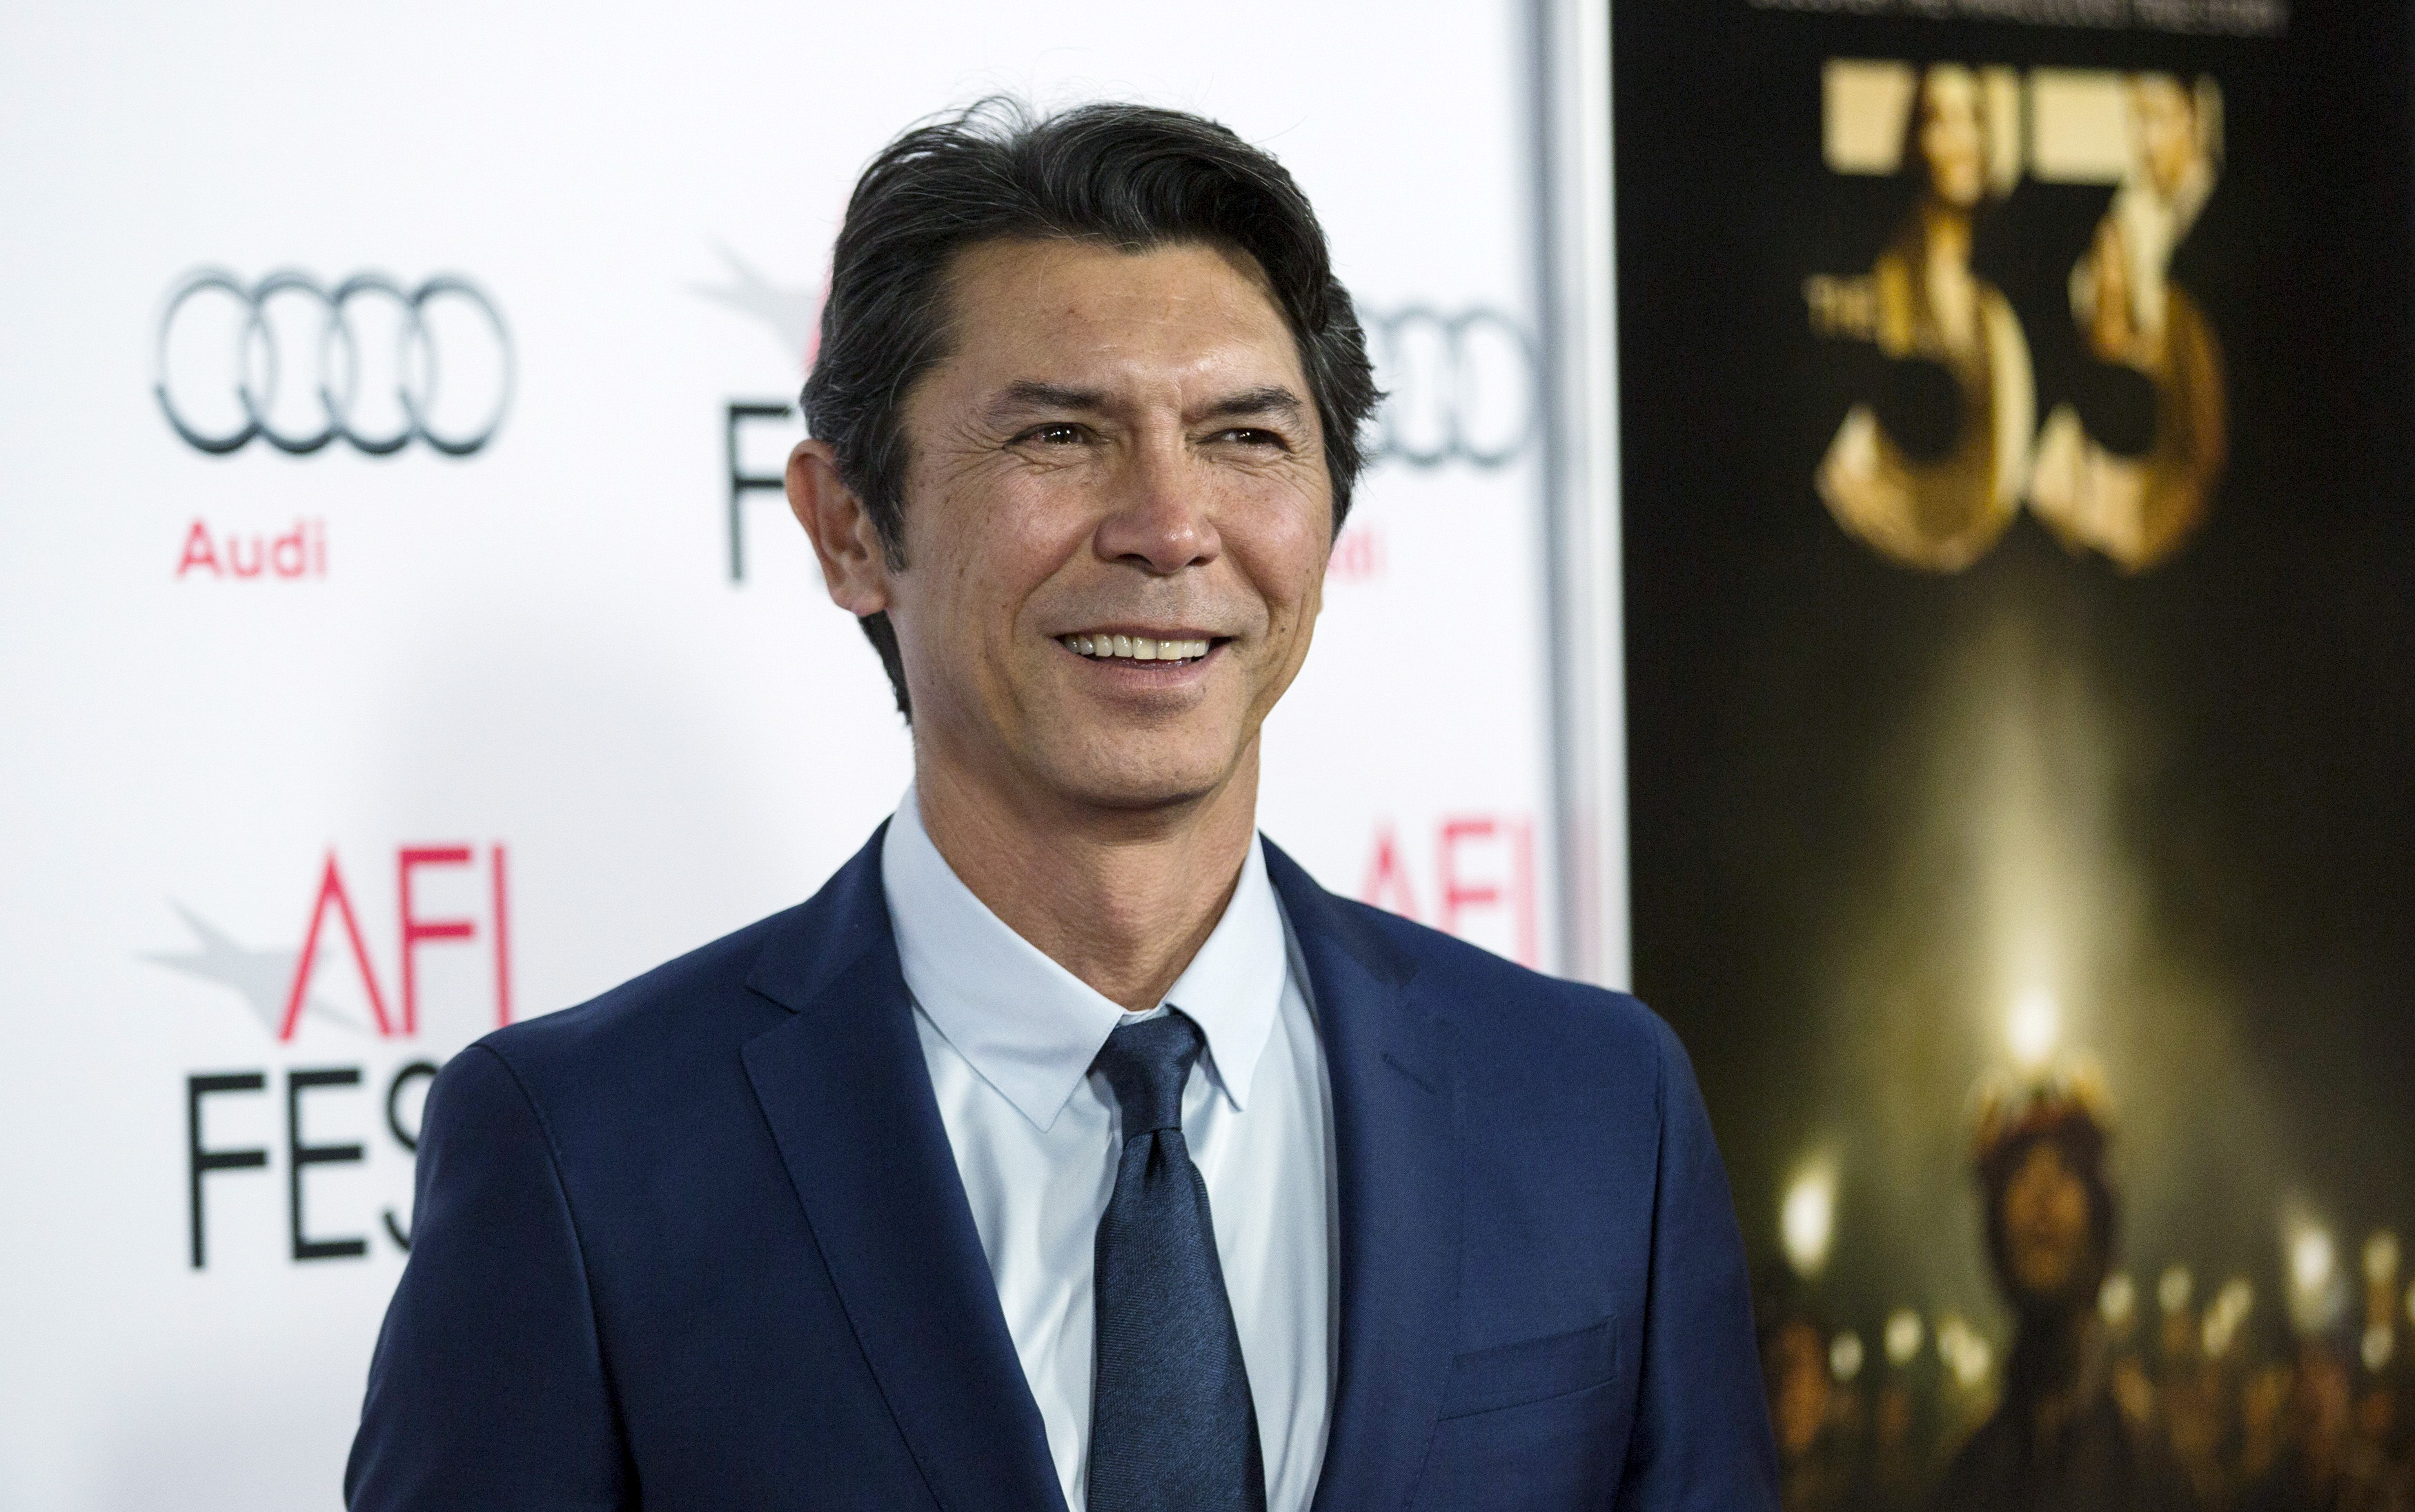 lou diamond phillips longmirelou diamond phillips best movies, lou diamond phillips jeff kober, lou diamond phillips, lou diamond phillips twitter, lou diamond phillips blindspot, lou diamond phillips native american, lou diamond phillips net worth, lou diamond phillips movies, lou diamond phillips imdb, lou diamond phillips nationality, lou diamond phillips la bamba, lou diamond phillips dead, lou diamond phillips longmire, lou diamond phillips biography, lou diamond phillips height, lou diamond phillips wiggles, lou diamond phillips young guns